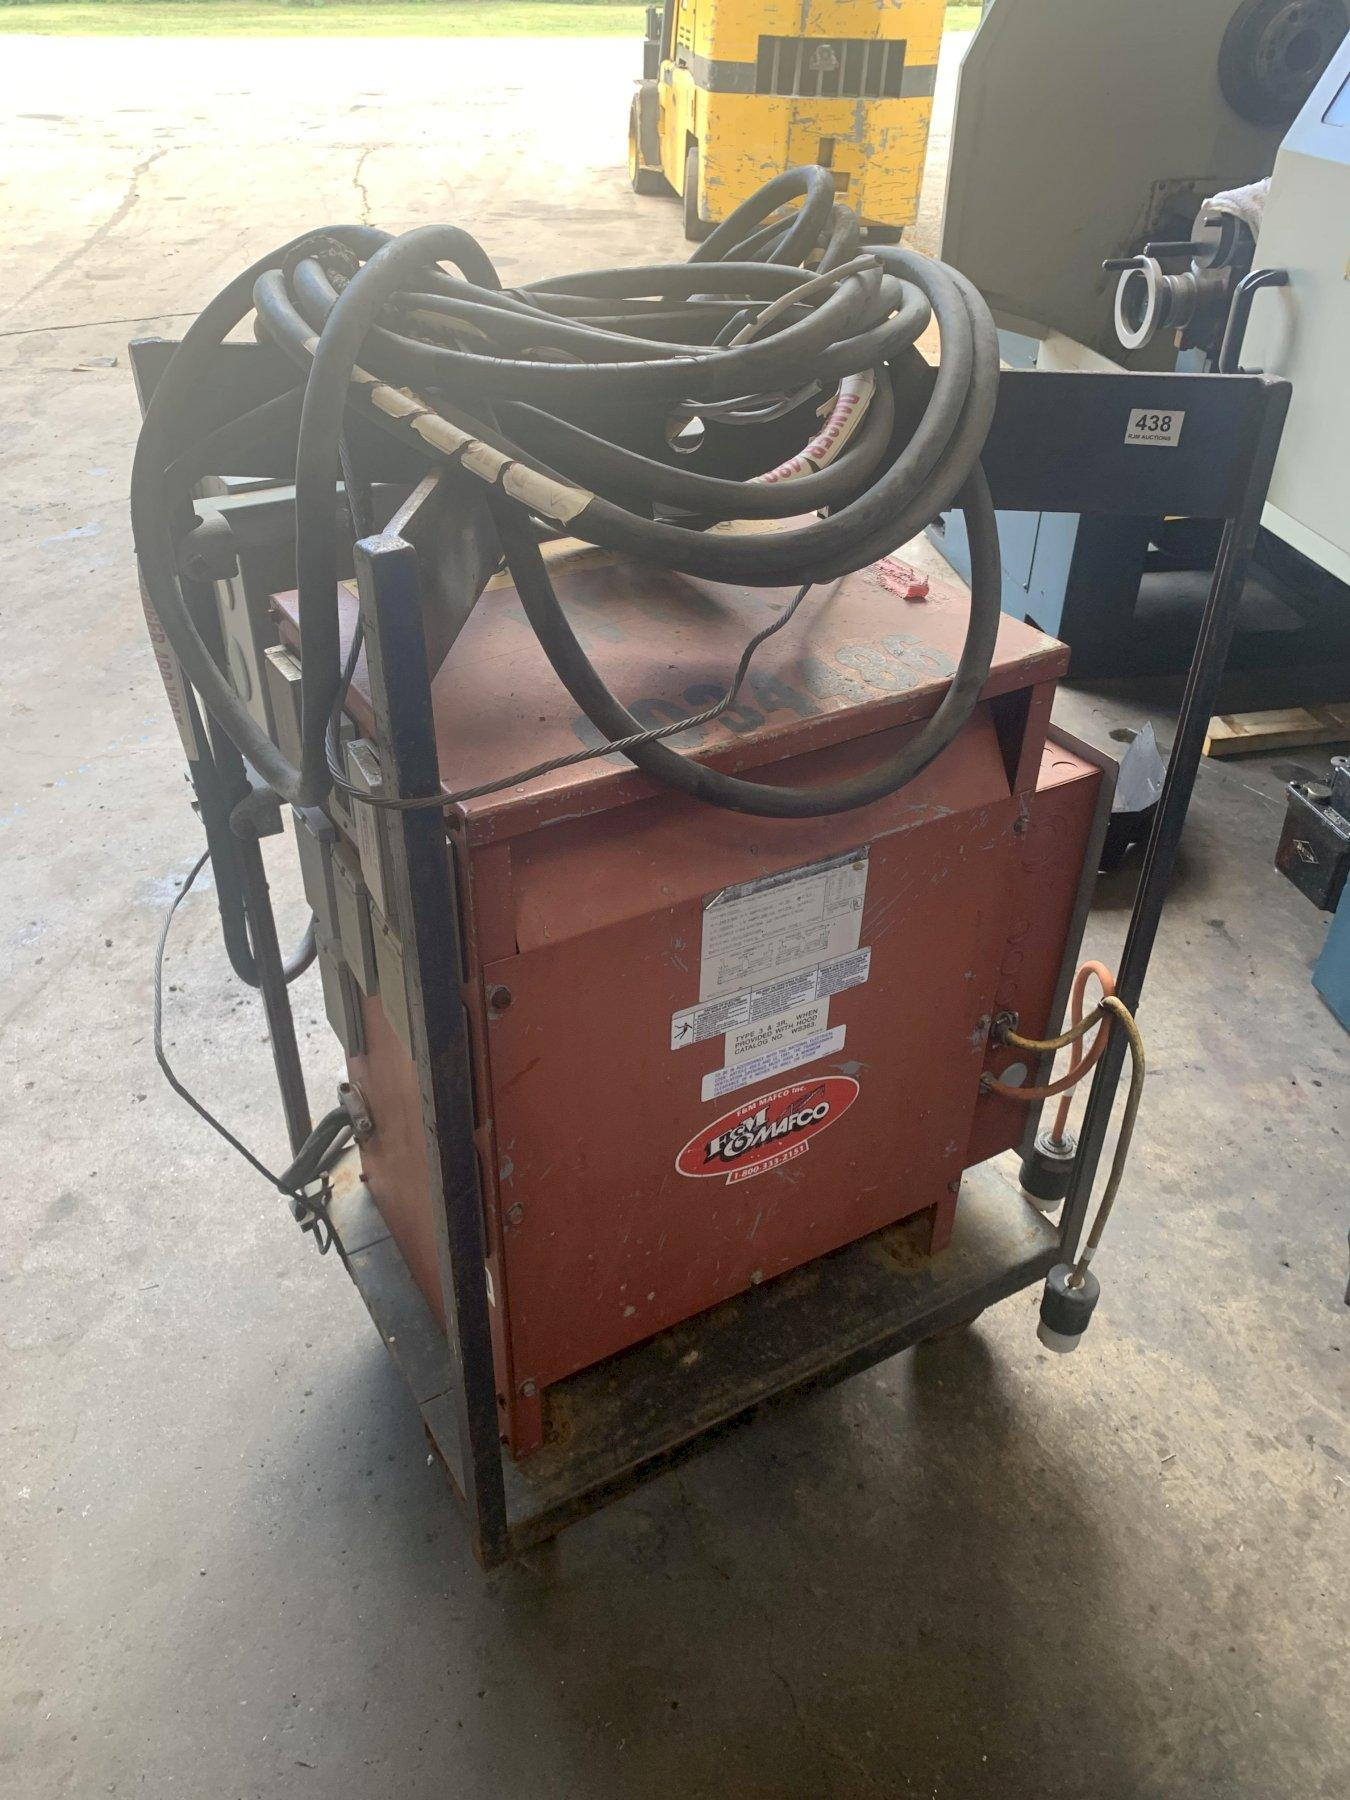 25 KVA SORGEL 240X 480 TI 120/240 SINGLE PHASE ELECTRICAL TRANSFORMER: STOCK 13475